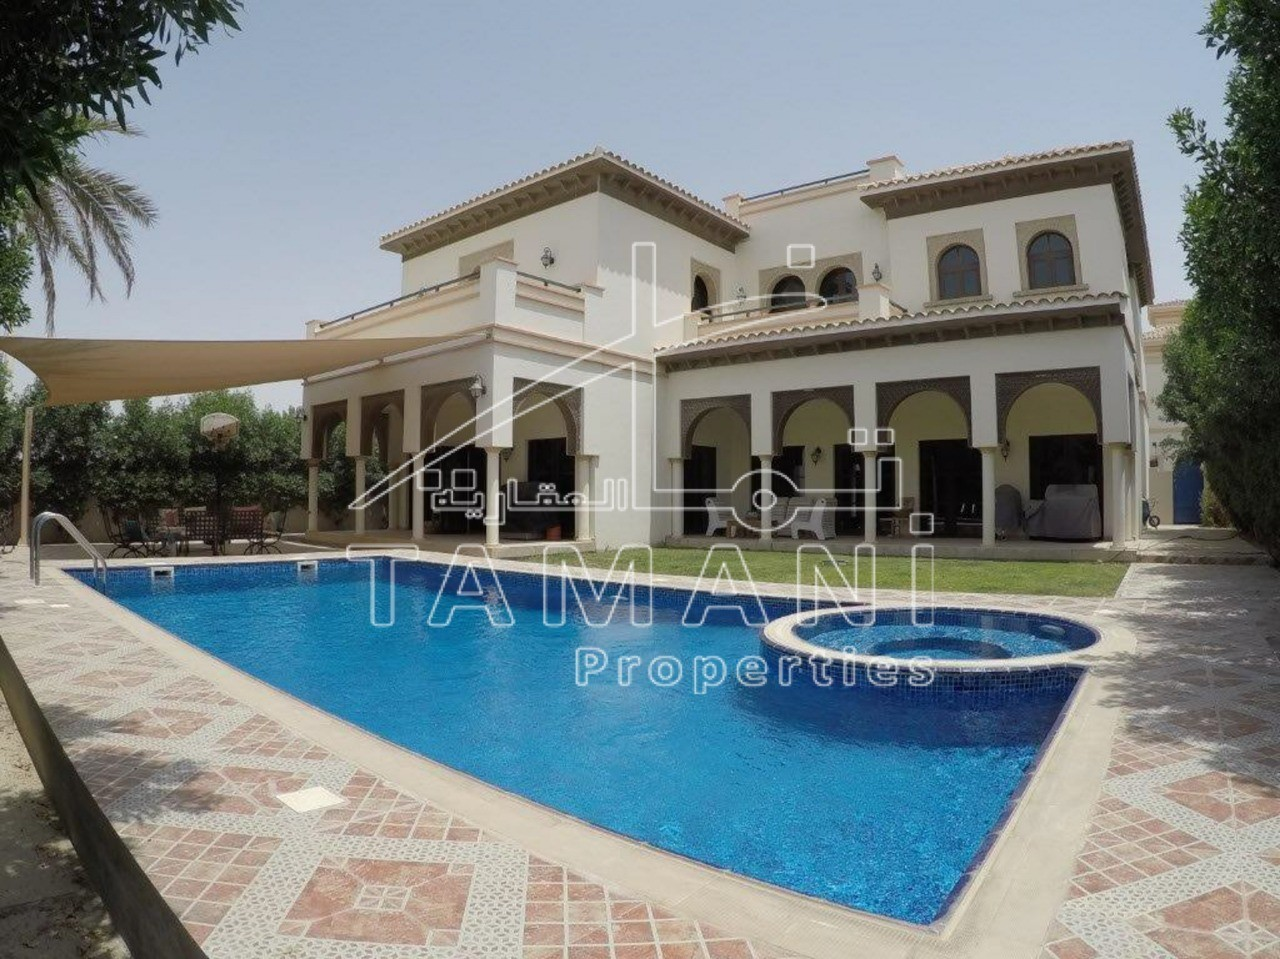 9700 Sq ft Plot |Upgraded Granada | Pool – Ponderosa